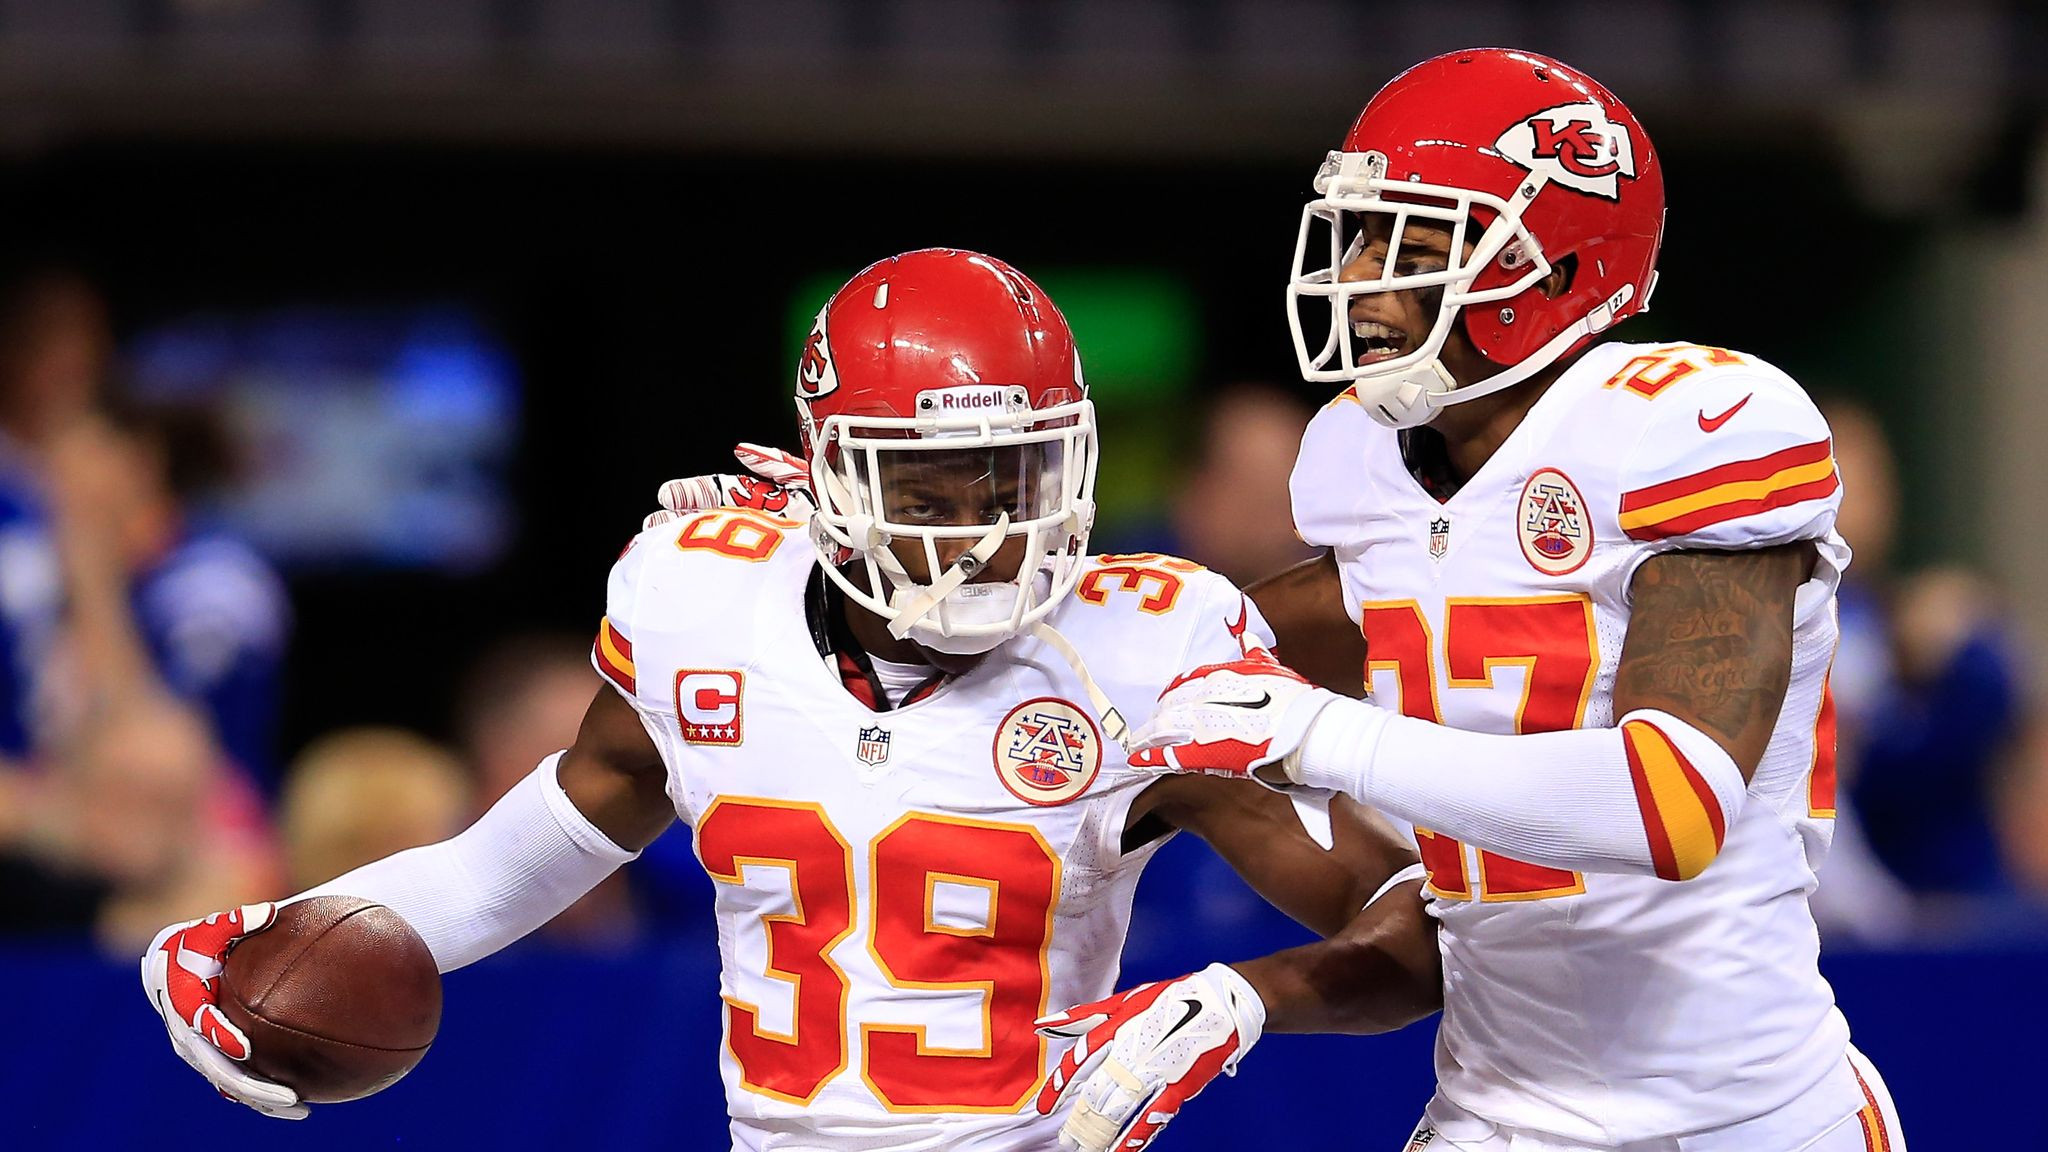 Husain Abdullah retires from NFL over fear of suffering a sixth ...